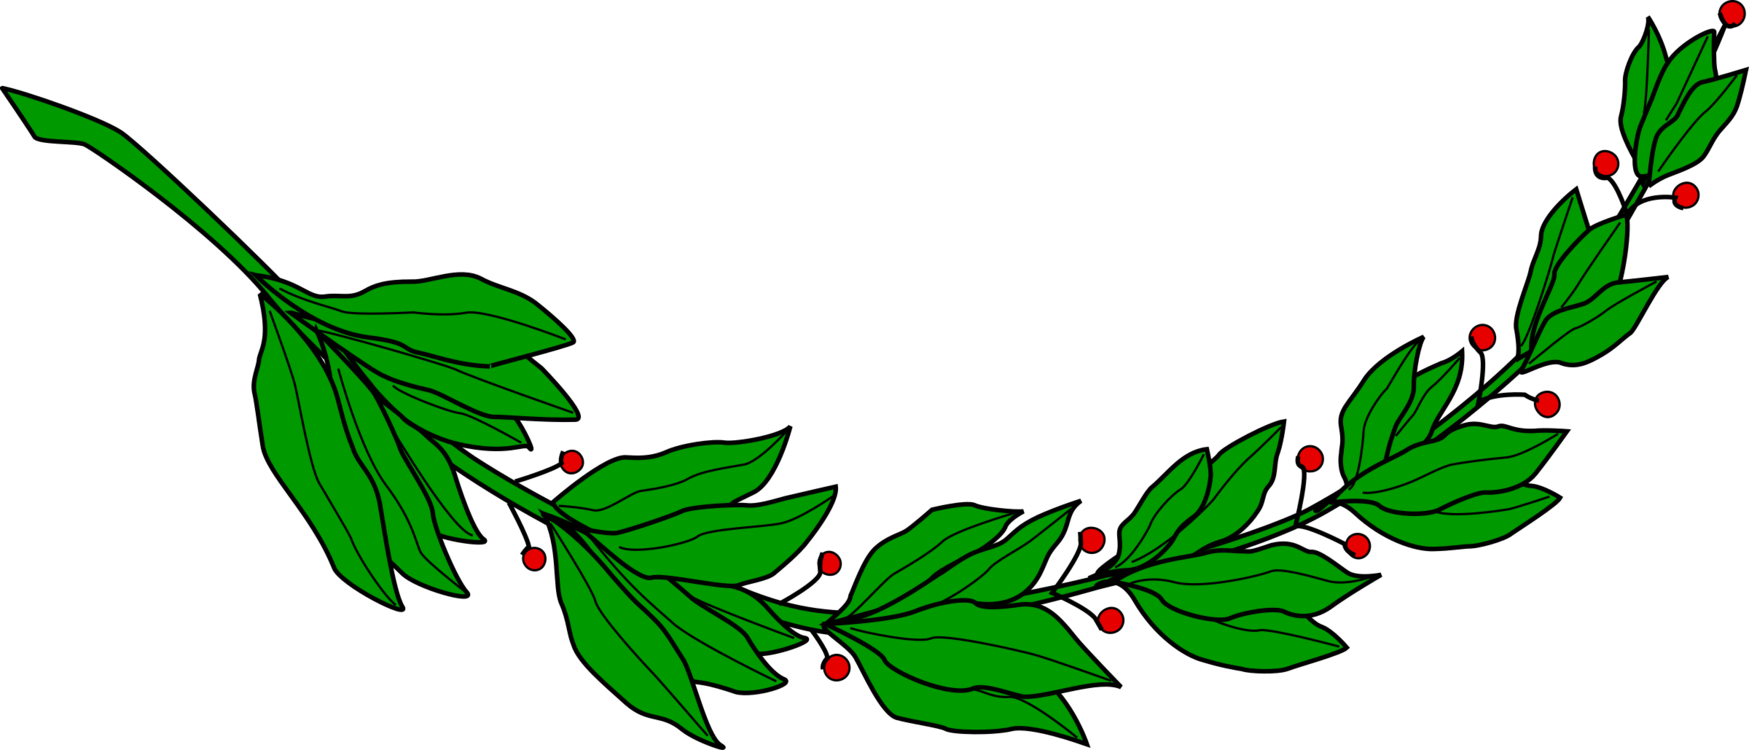 Laurel clipart leaf stem. Wreath computer icons bay